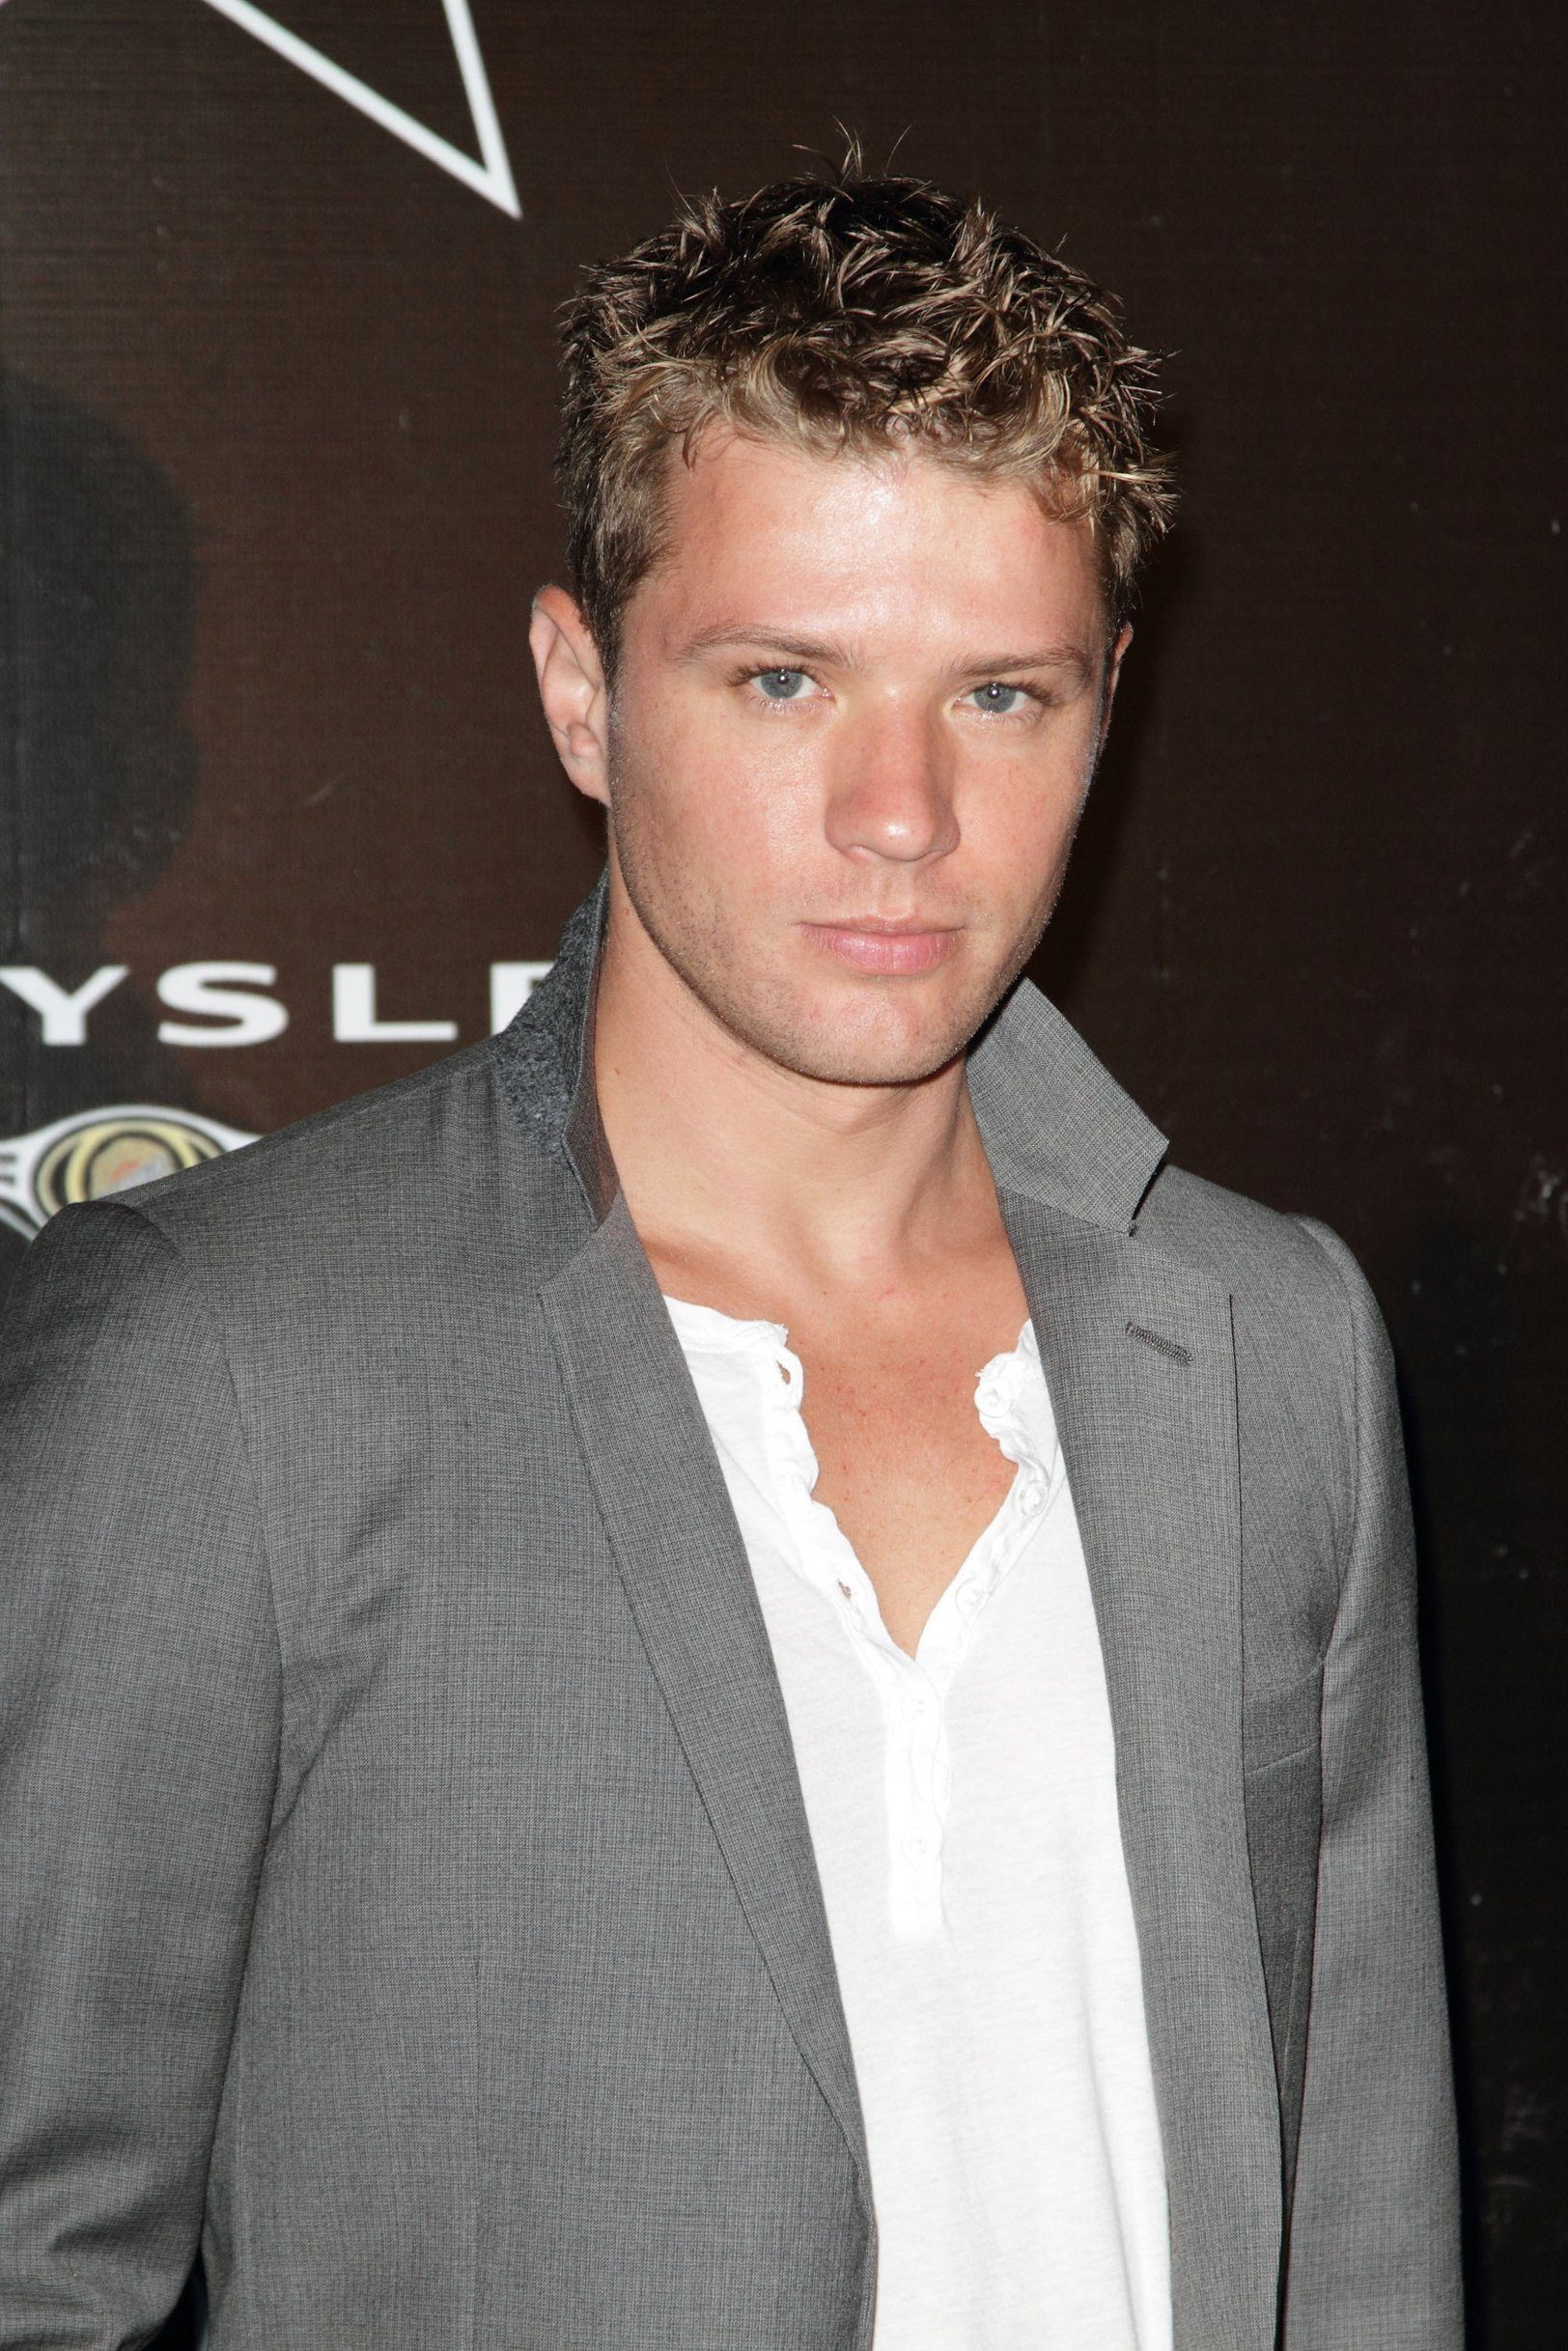 Ryan Phillippe images ... Ryan Phillippe Today